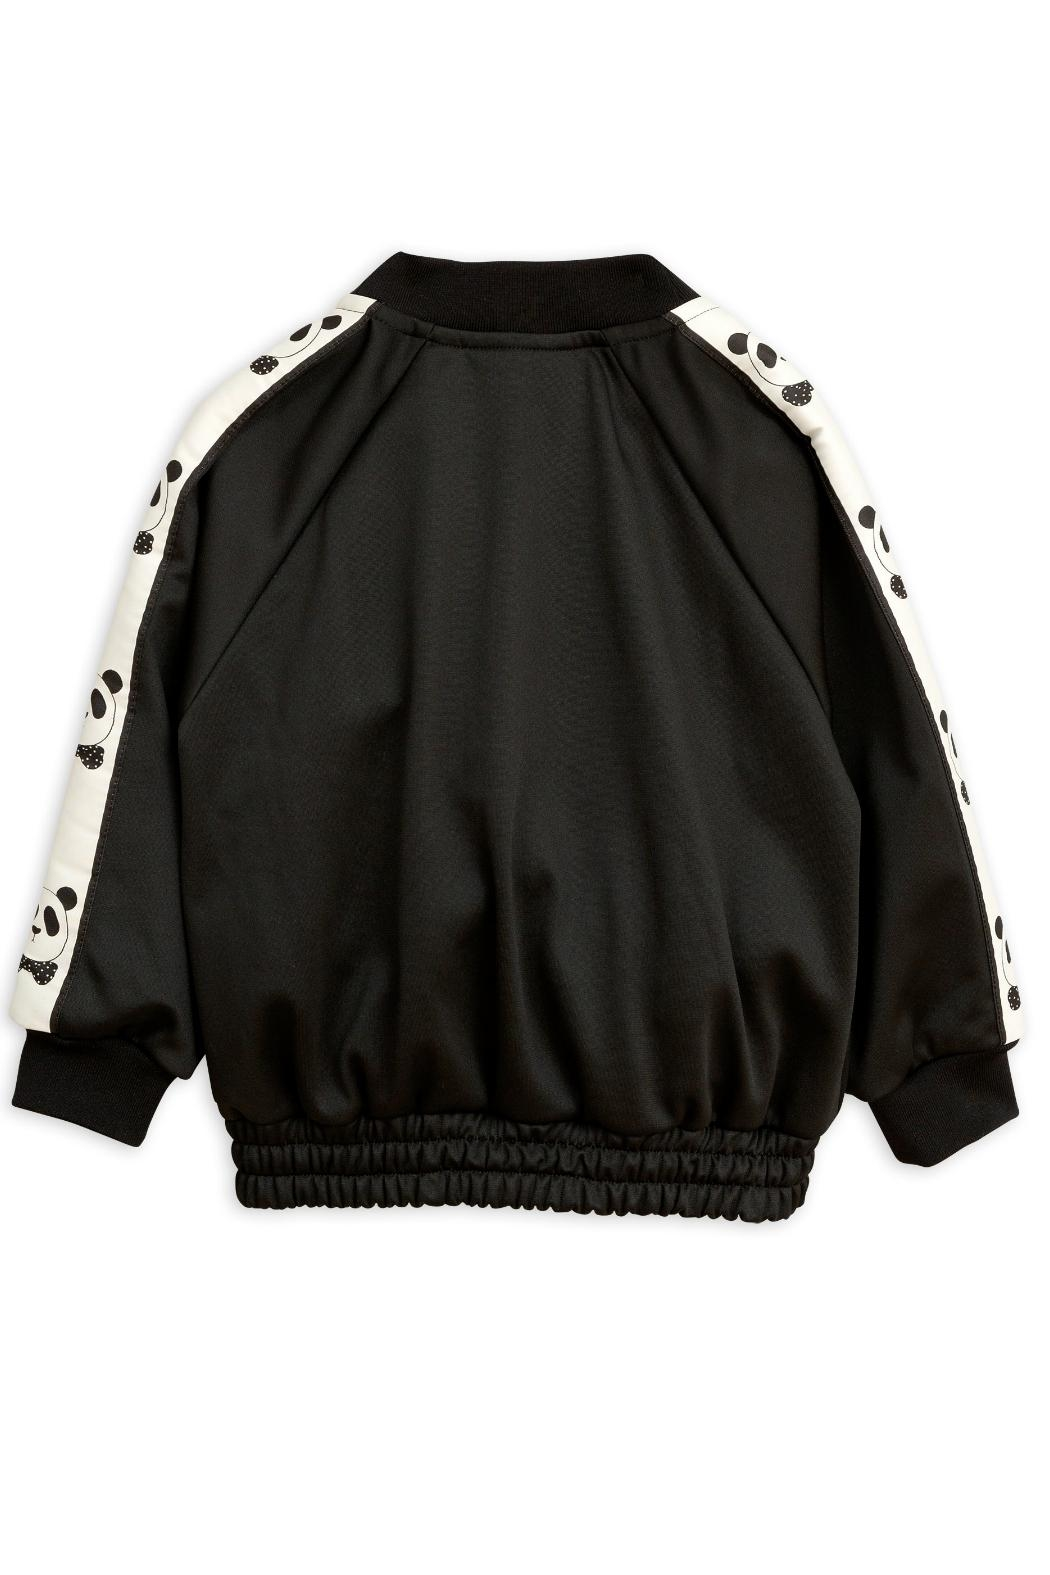 Mini Rodini Black Panda Jacket - Front Full Image